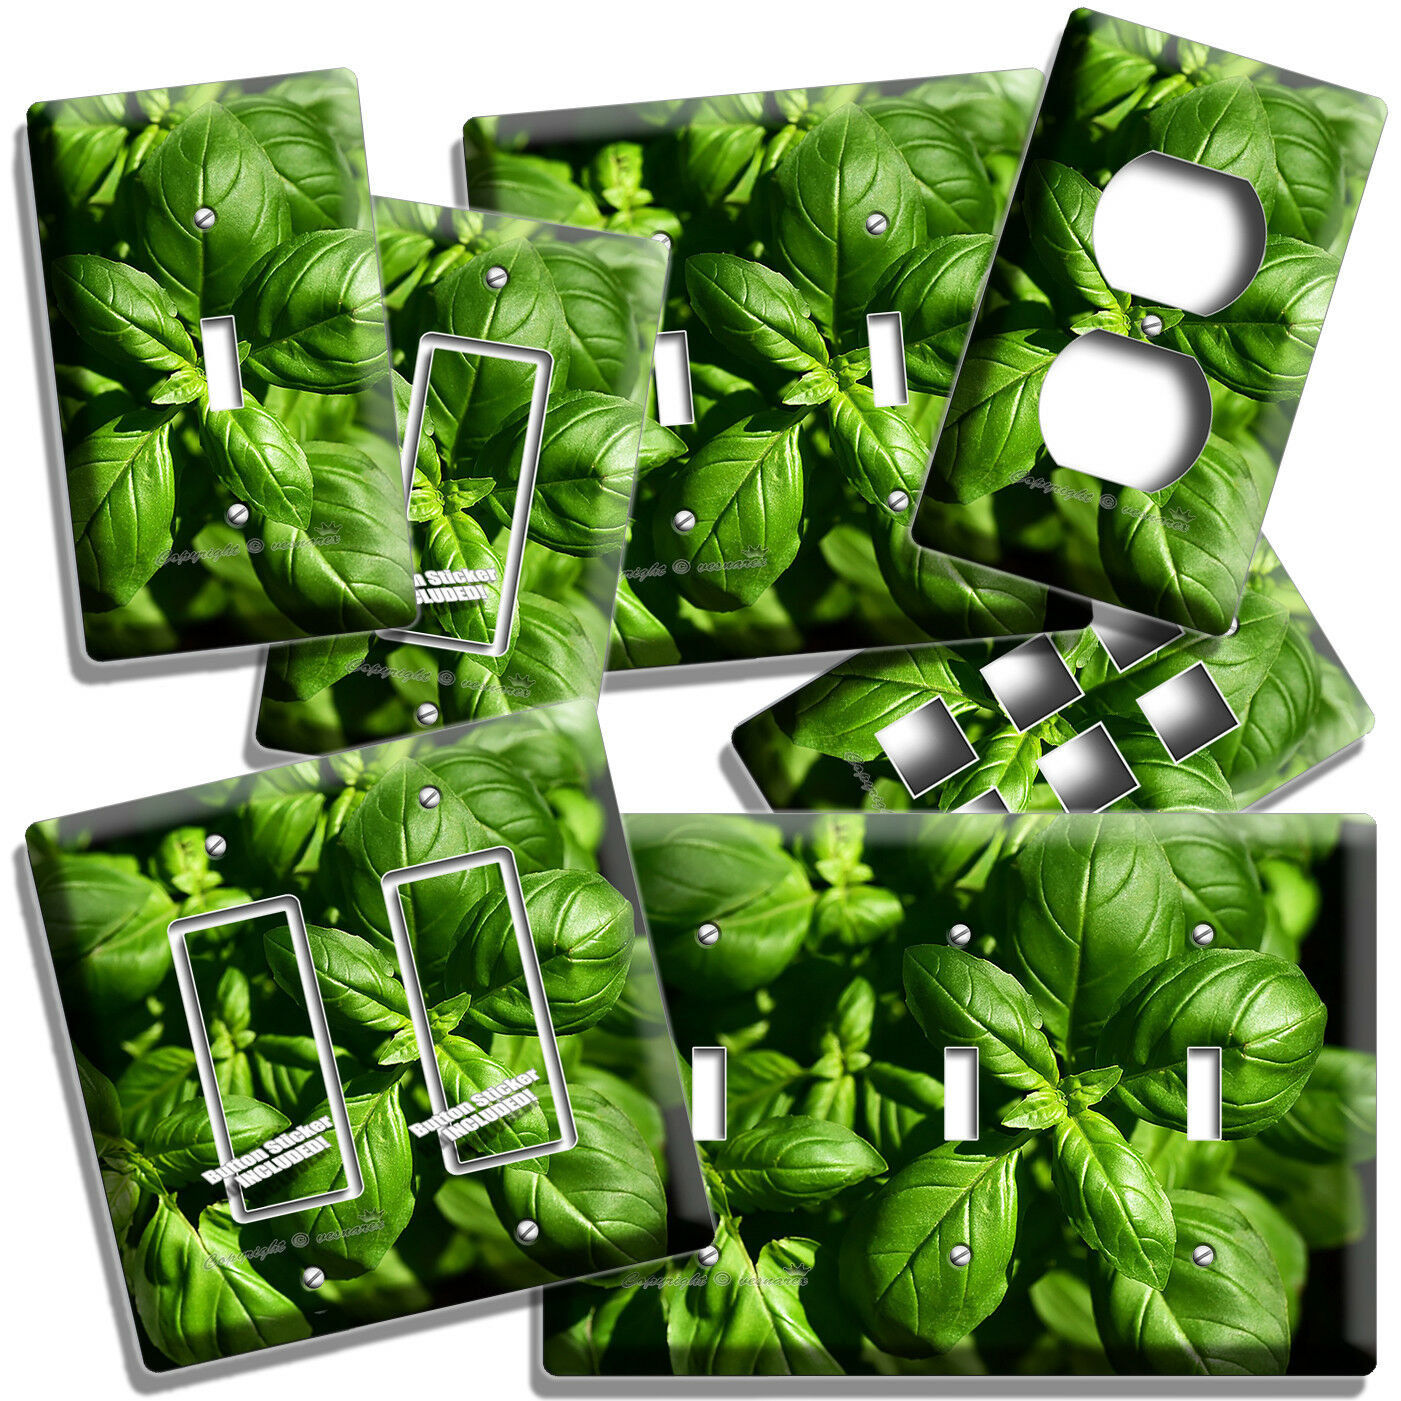 SWEET FRESH BASIL GREEN HERB LIGHT SWITCH OUTLET WALL PLATES